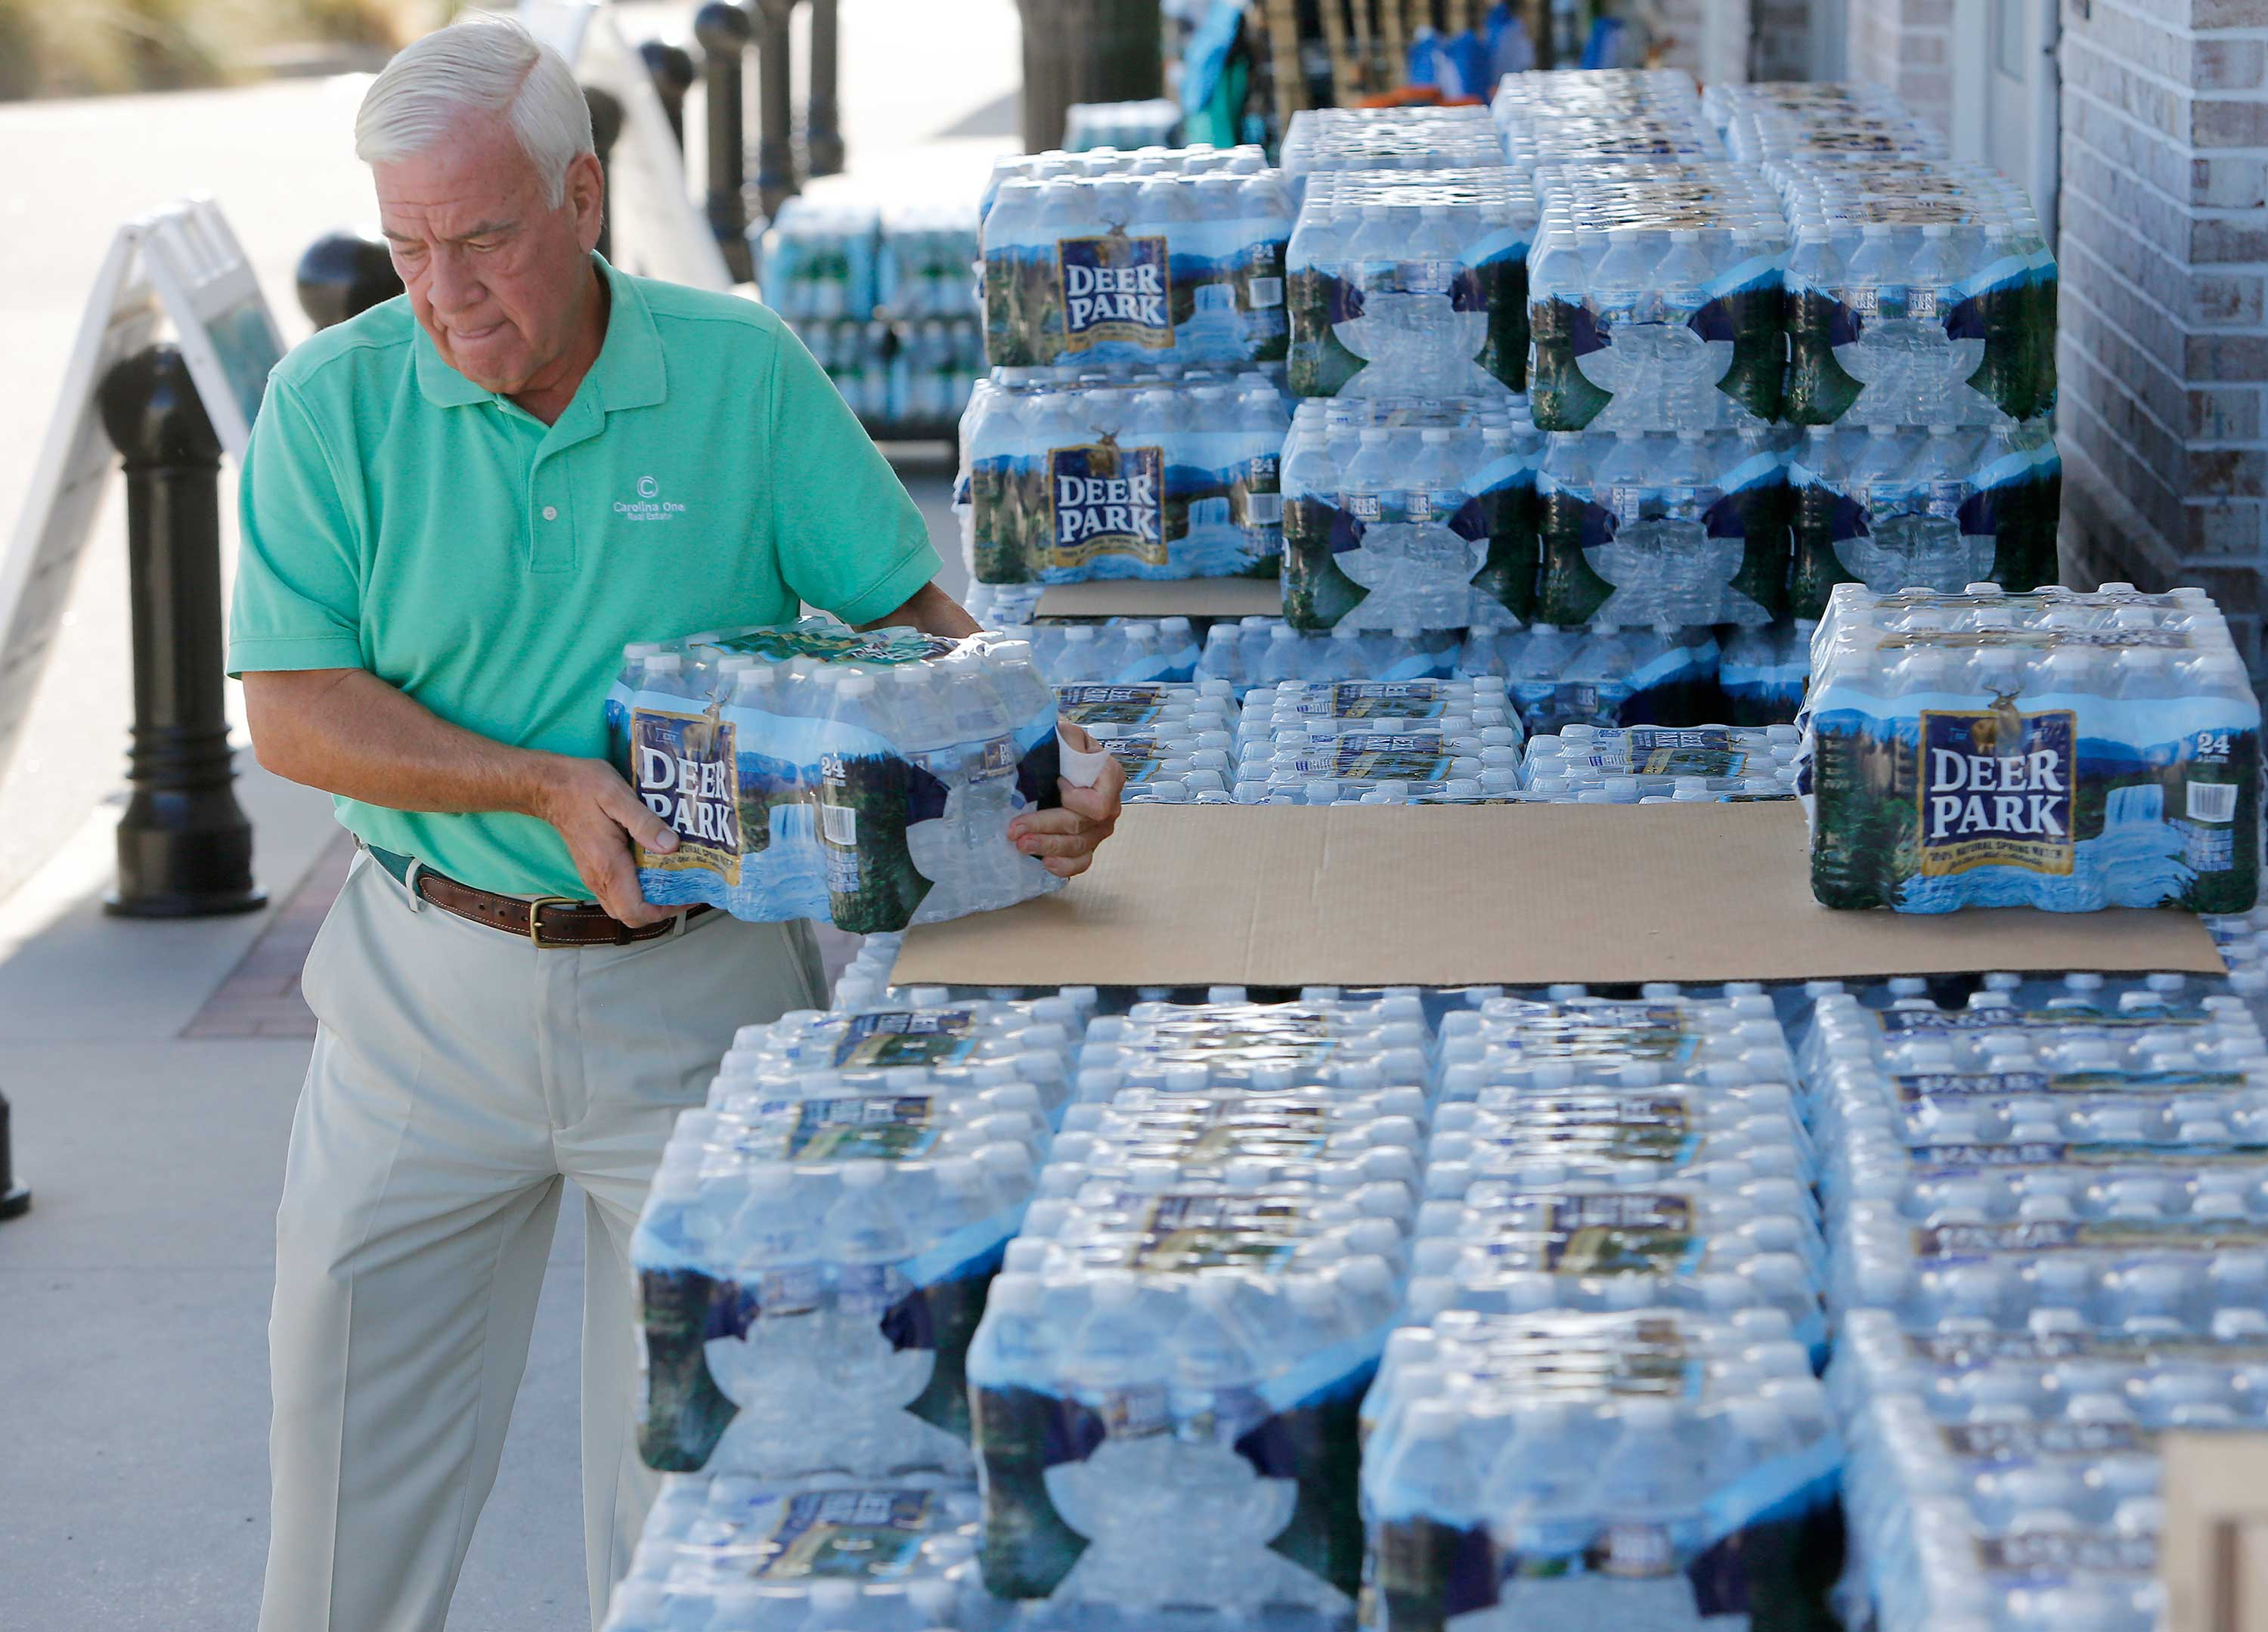 <div class='meta'><div class='origin-logo' data-origin='none'></div><span class='caption-text' data-credit='Mic Smith/AP Photo'>Larry Pierson, from the Isle of Palms, S.C., purchases bottled water from the Harris Teeter grocery store on the Isle of Palms in preparation for Hurricane Florence on Monday.</span></div>